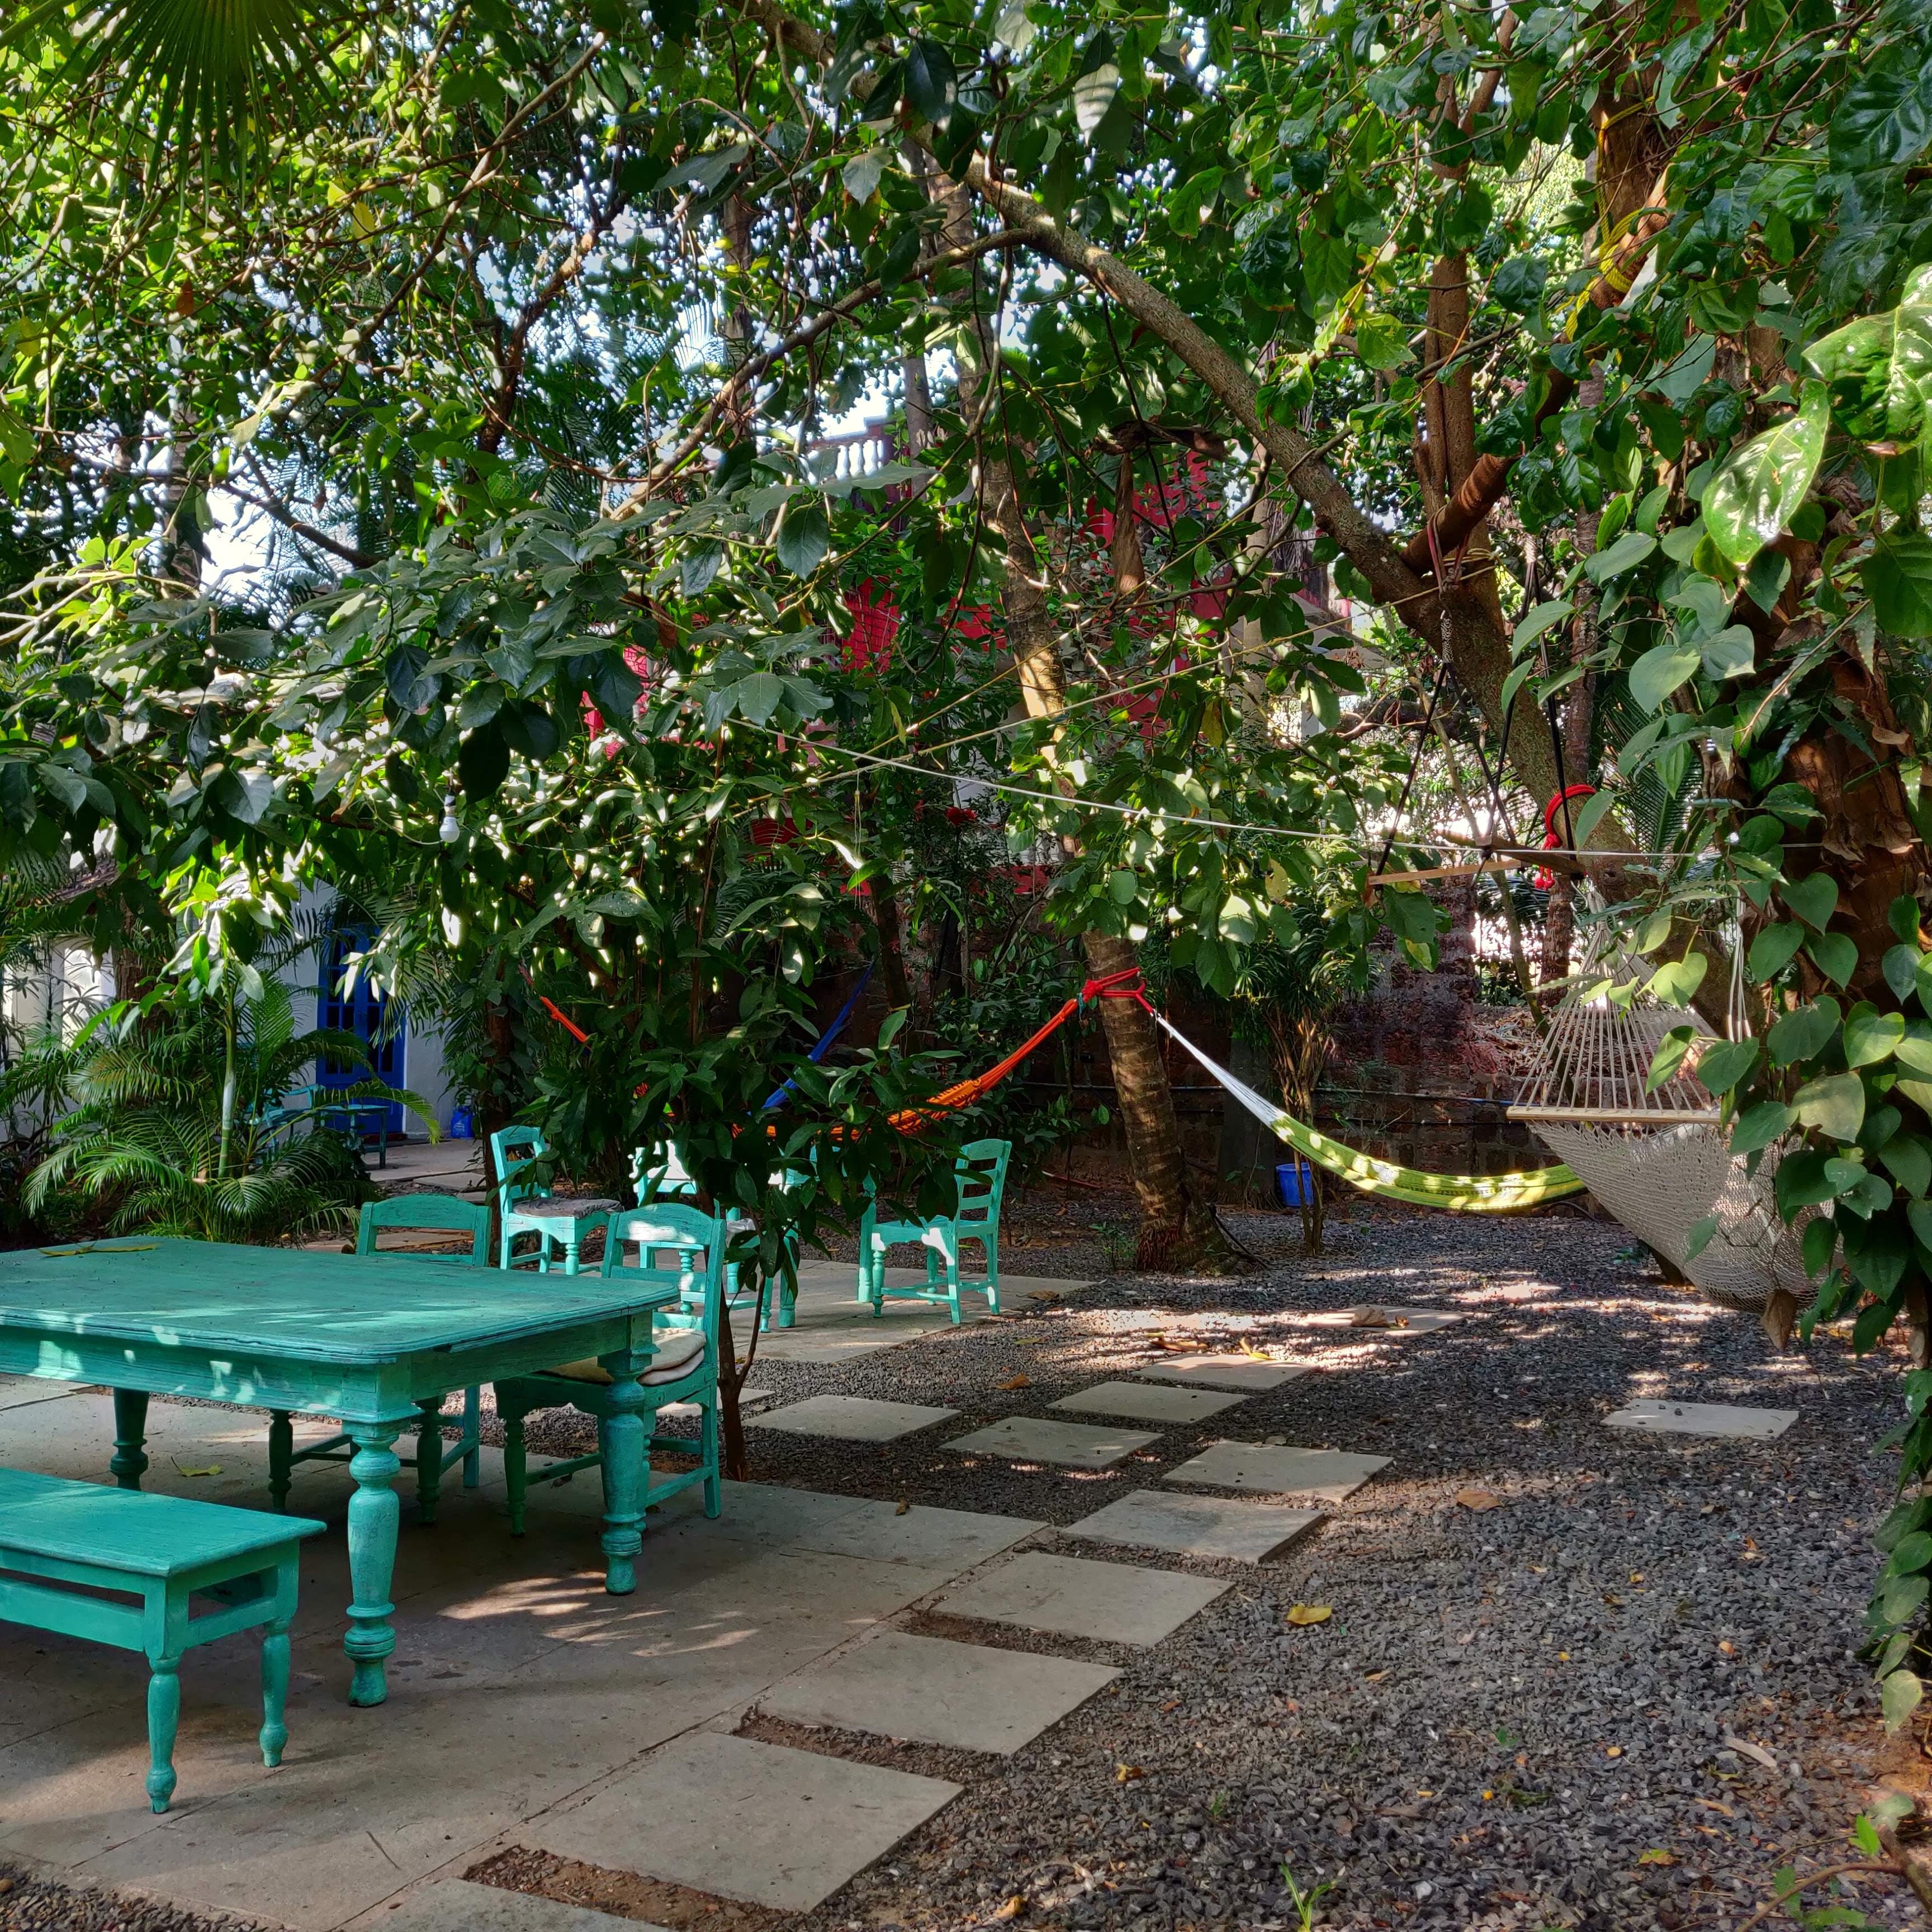 Planning A Goa Trip? Book A Room At This Amazing Hostel In Arpora